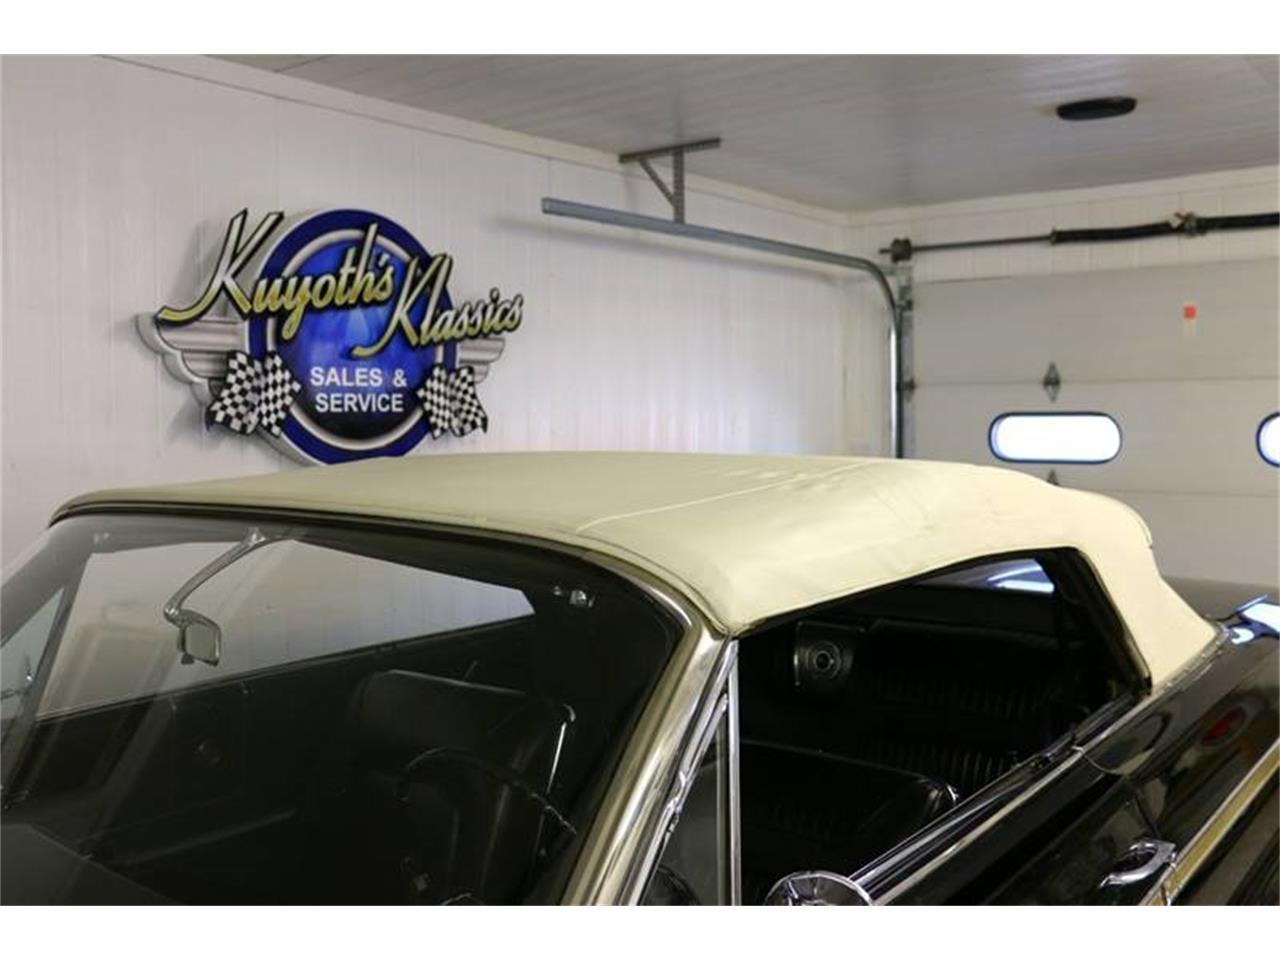 Large Picture of Classic 1964 Impala located in Wisconsin Offered by Kuyoth's Klassics - MHC3